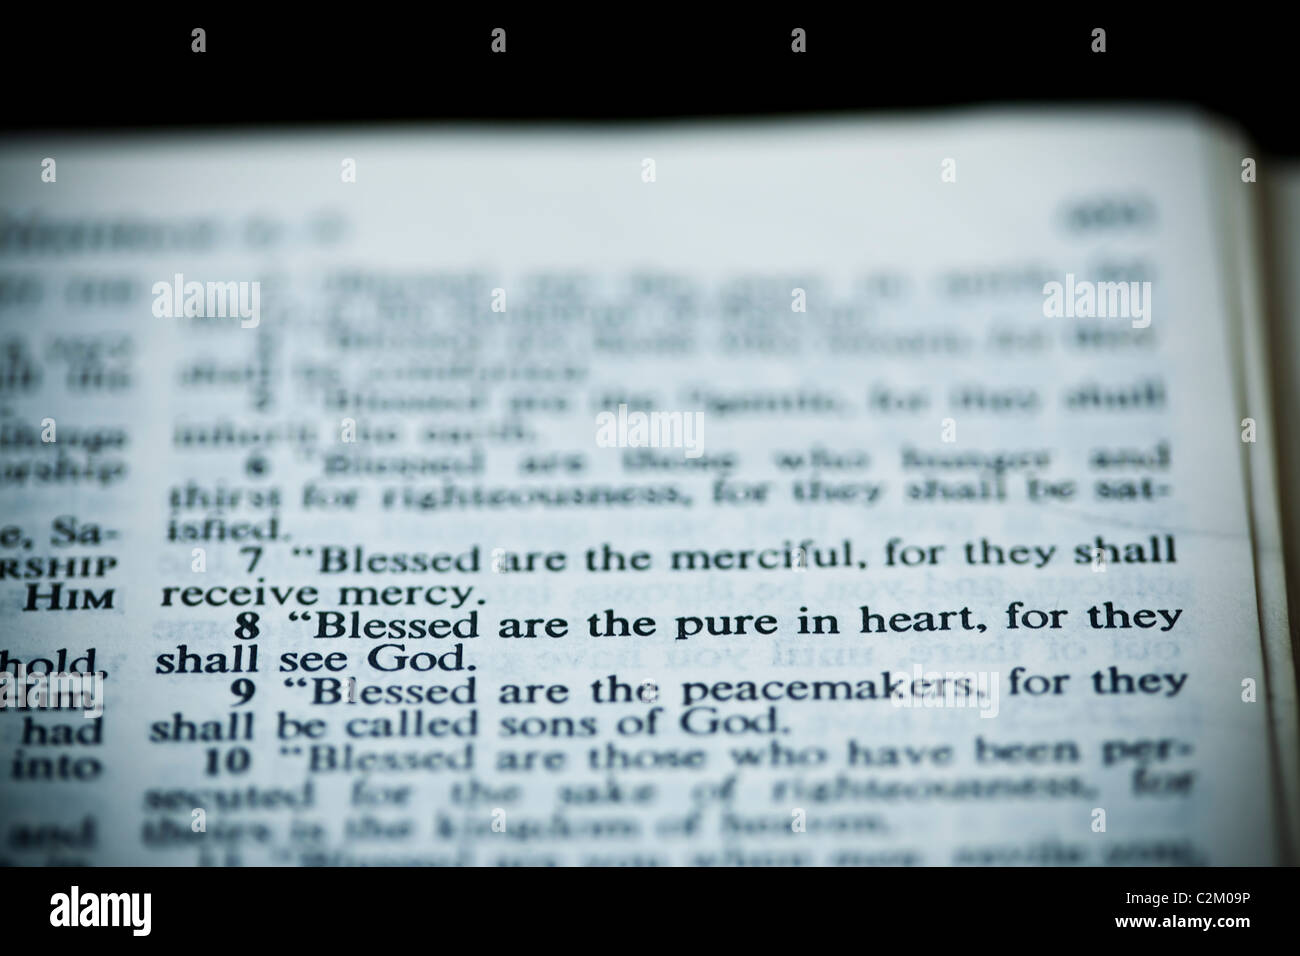 The New American Standard Bible Open To Matthew 5:8, The